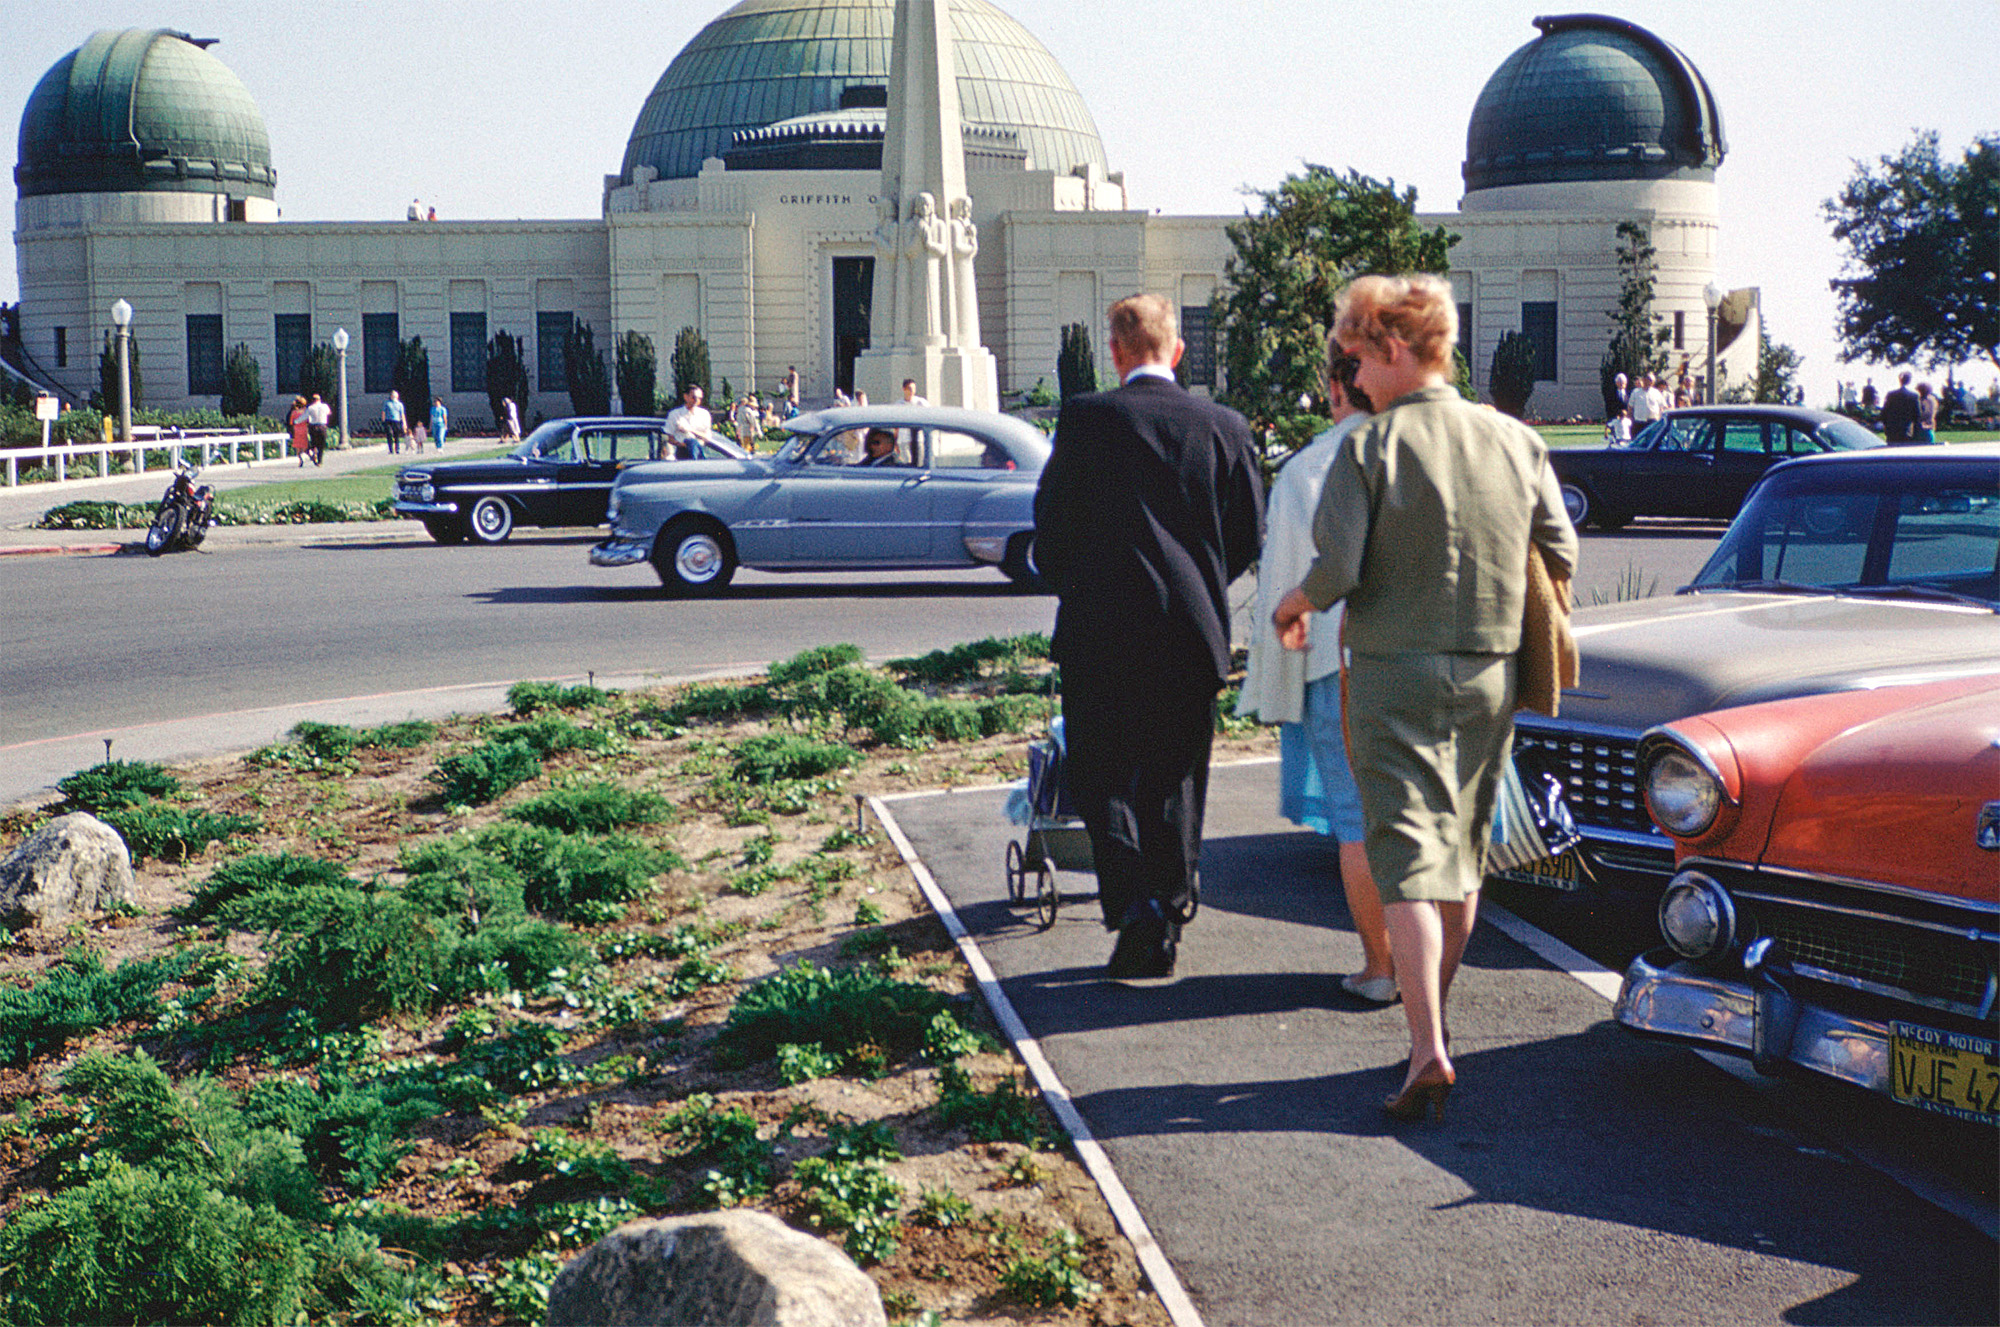 Family outing to Griffith Observatory in Los Angeles, Spring 1962. New ... Losangeles